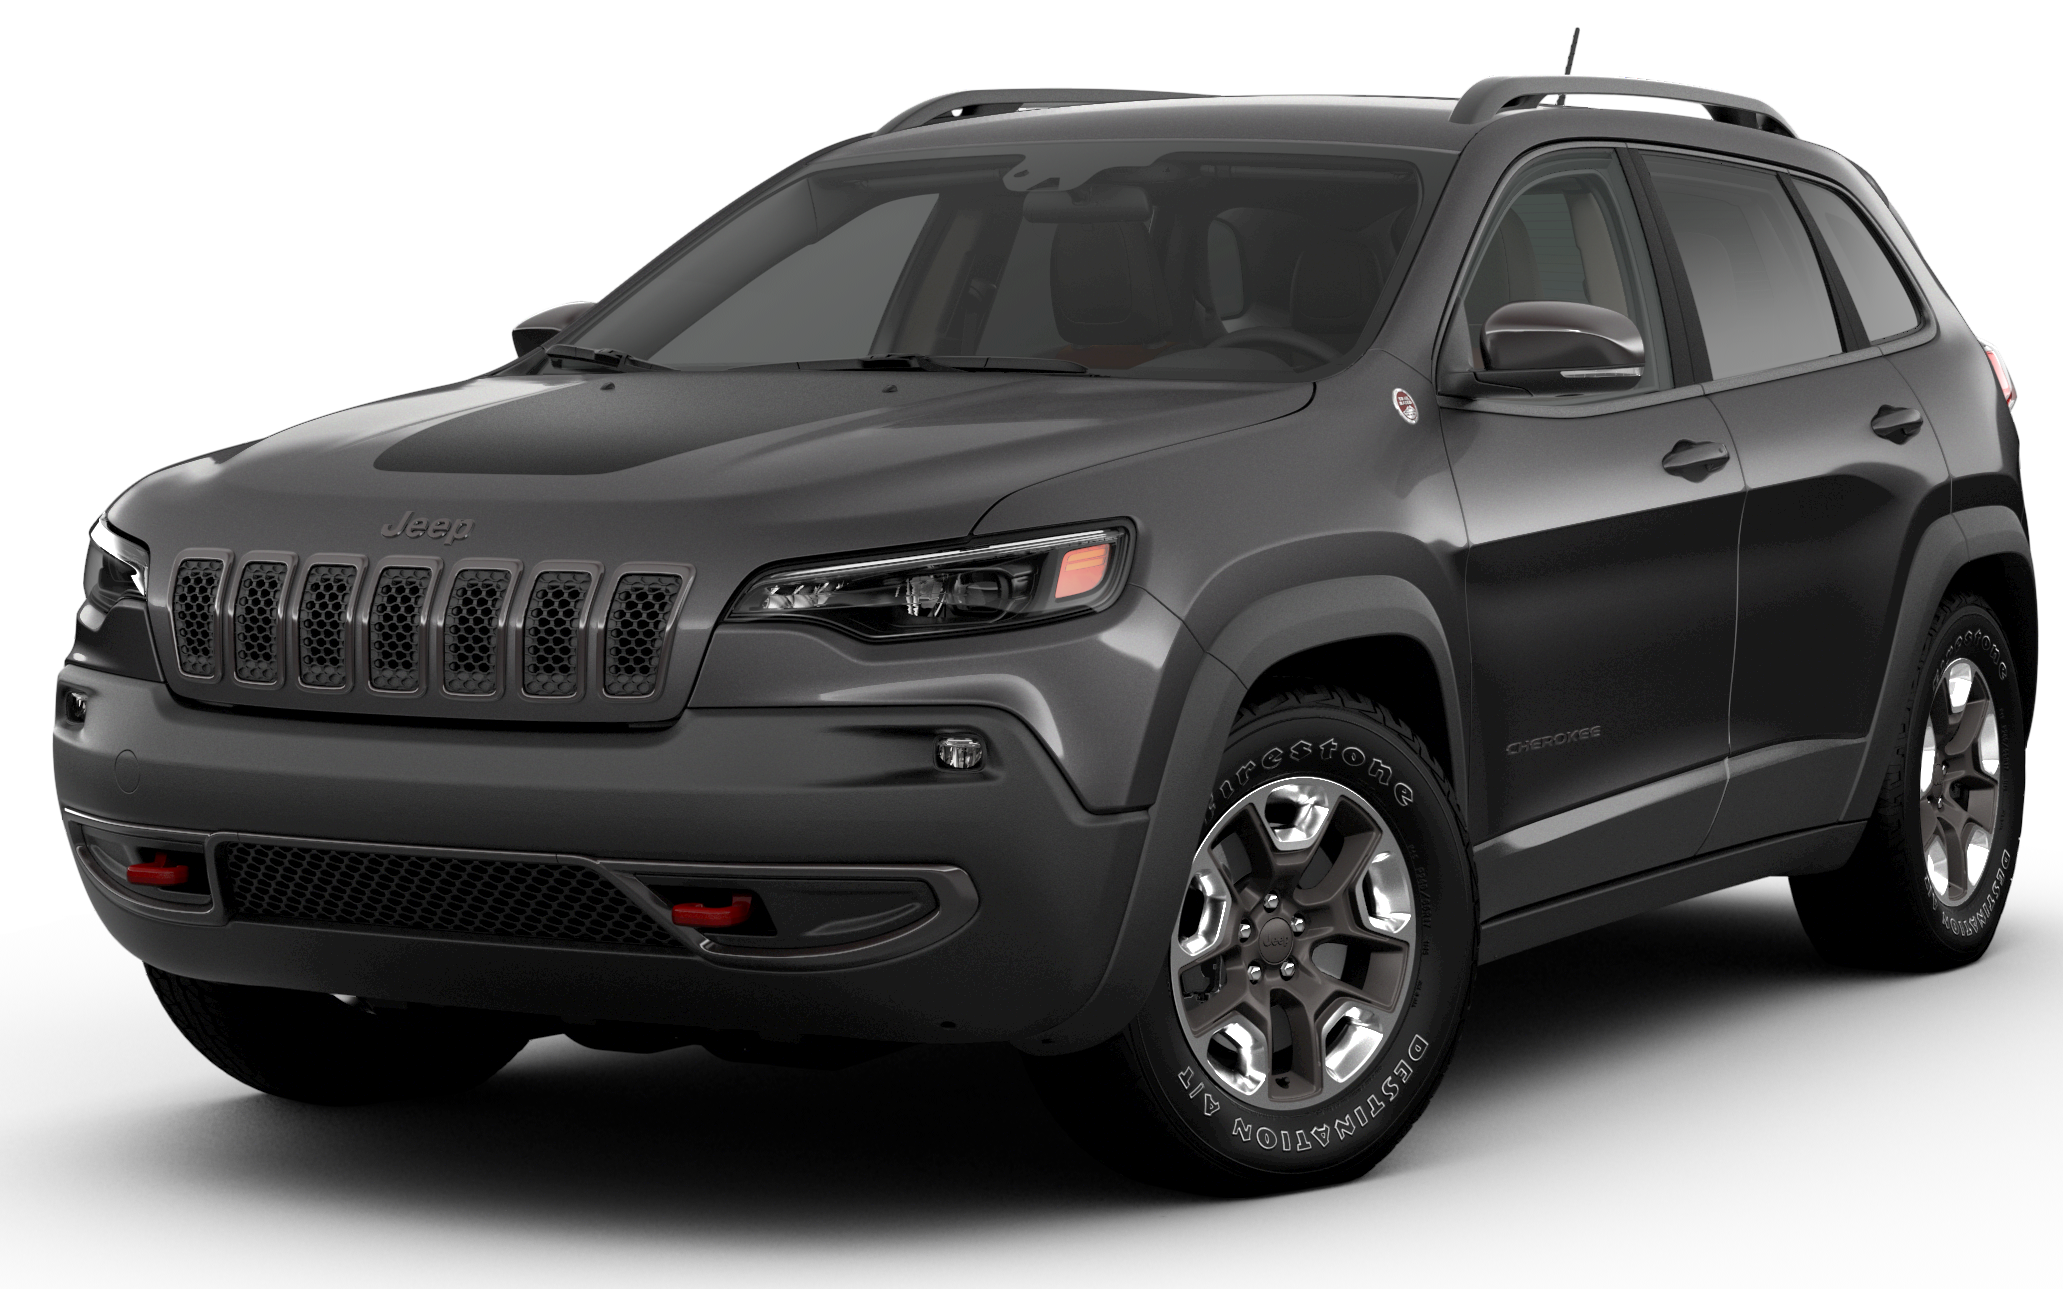 Review & Compare the 2019 Jeep Cherokee at Larry H. Miller